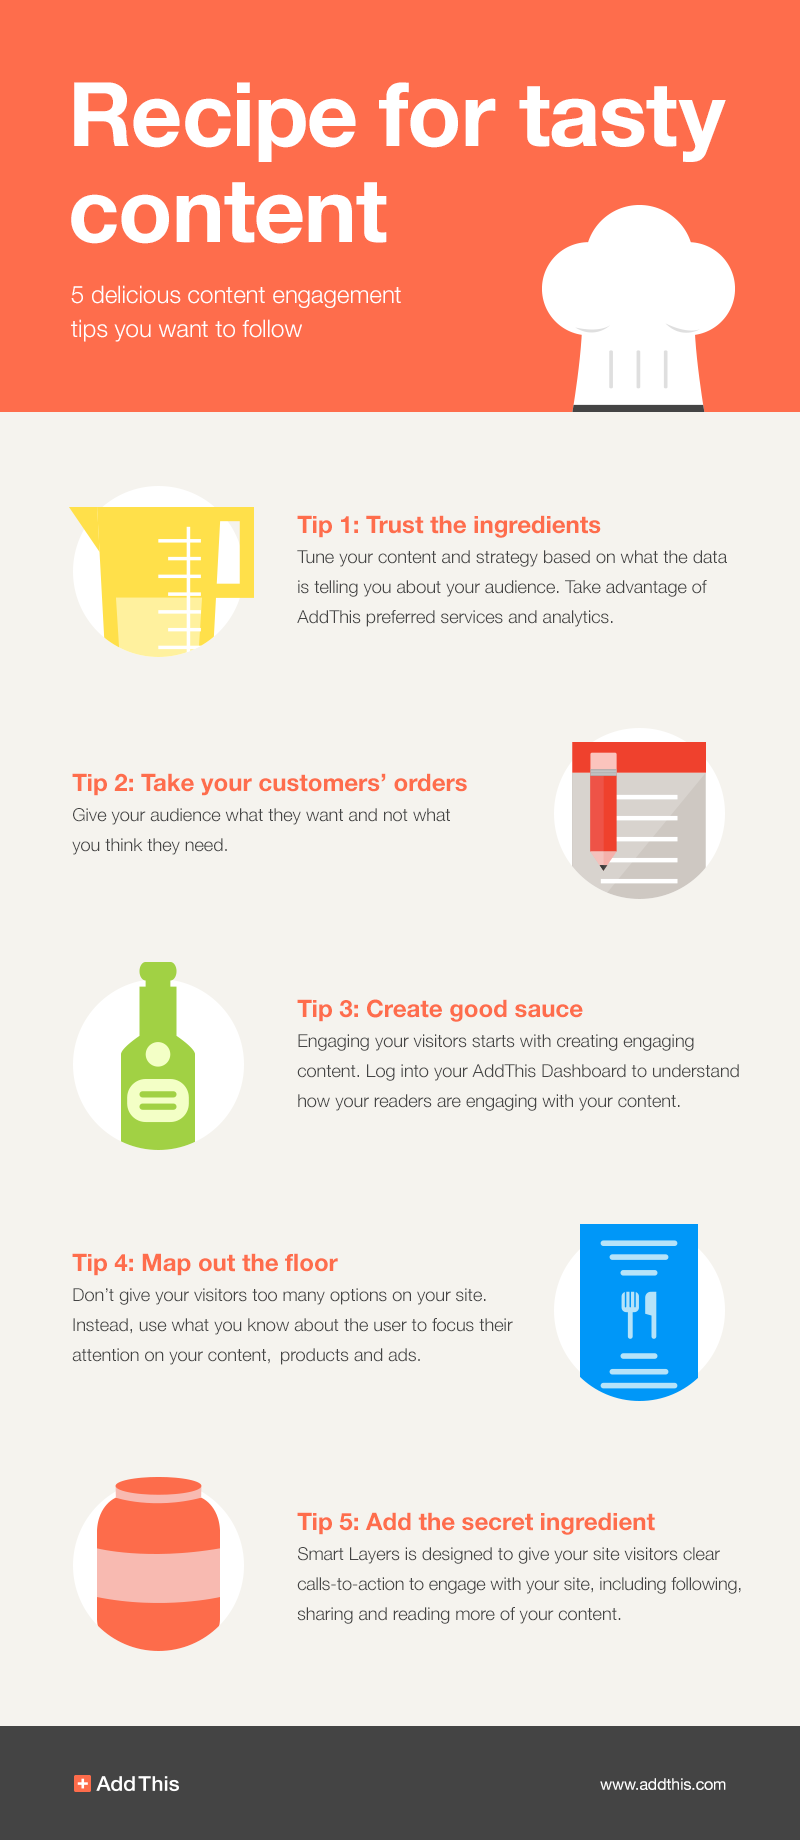 5_Delicious_Content_Engagement_Tips_Newsletter